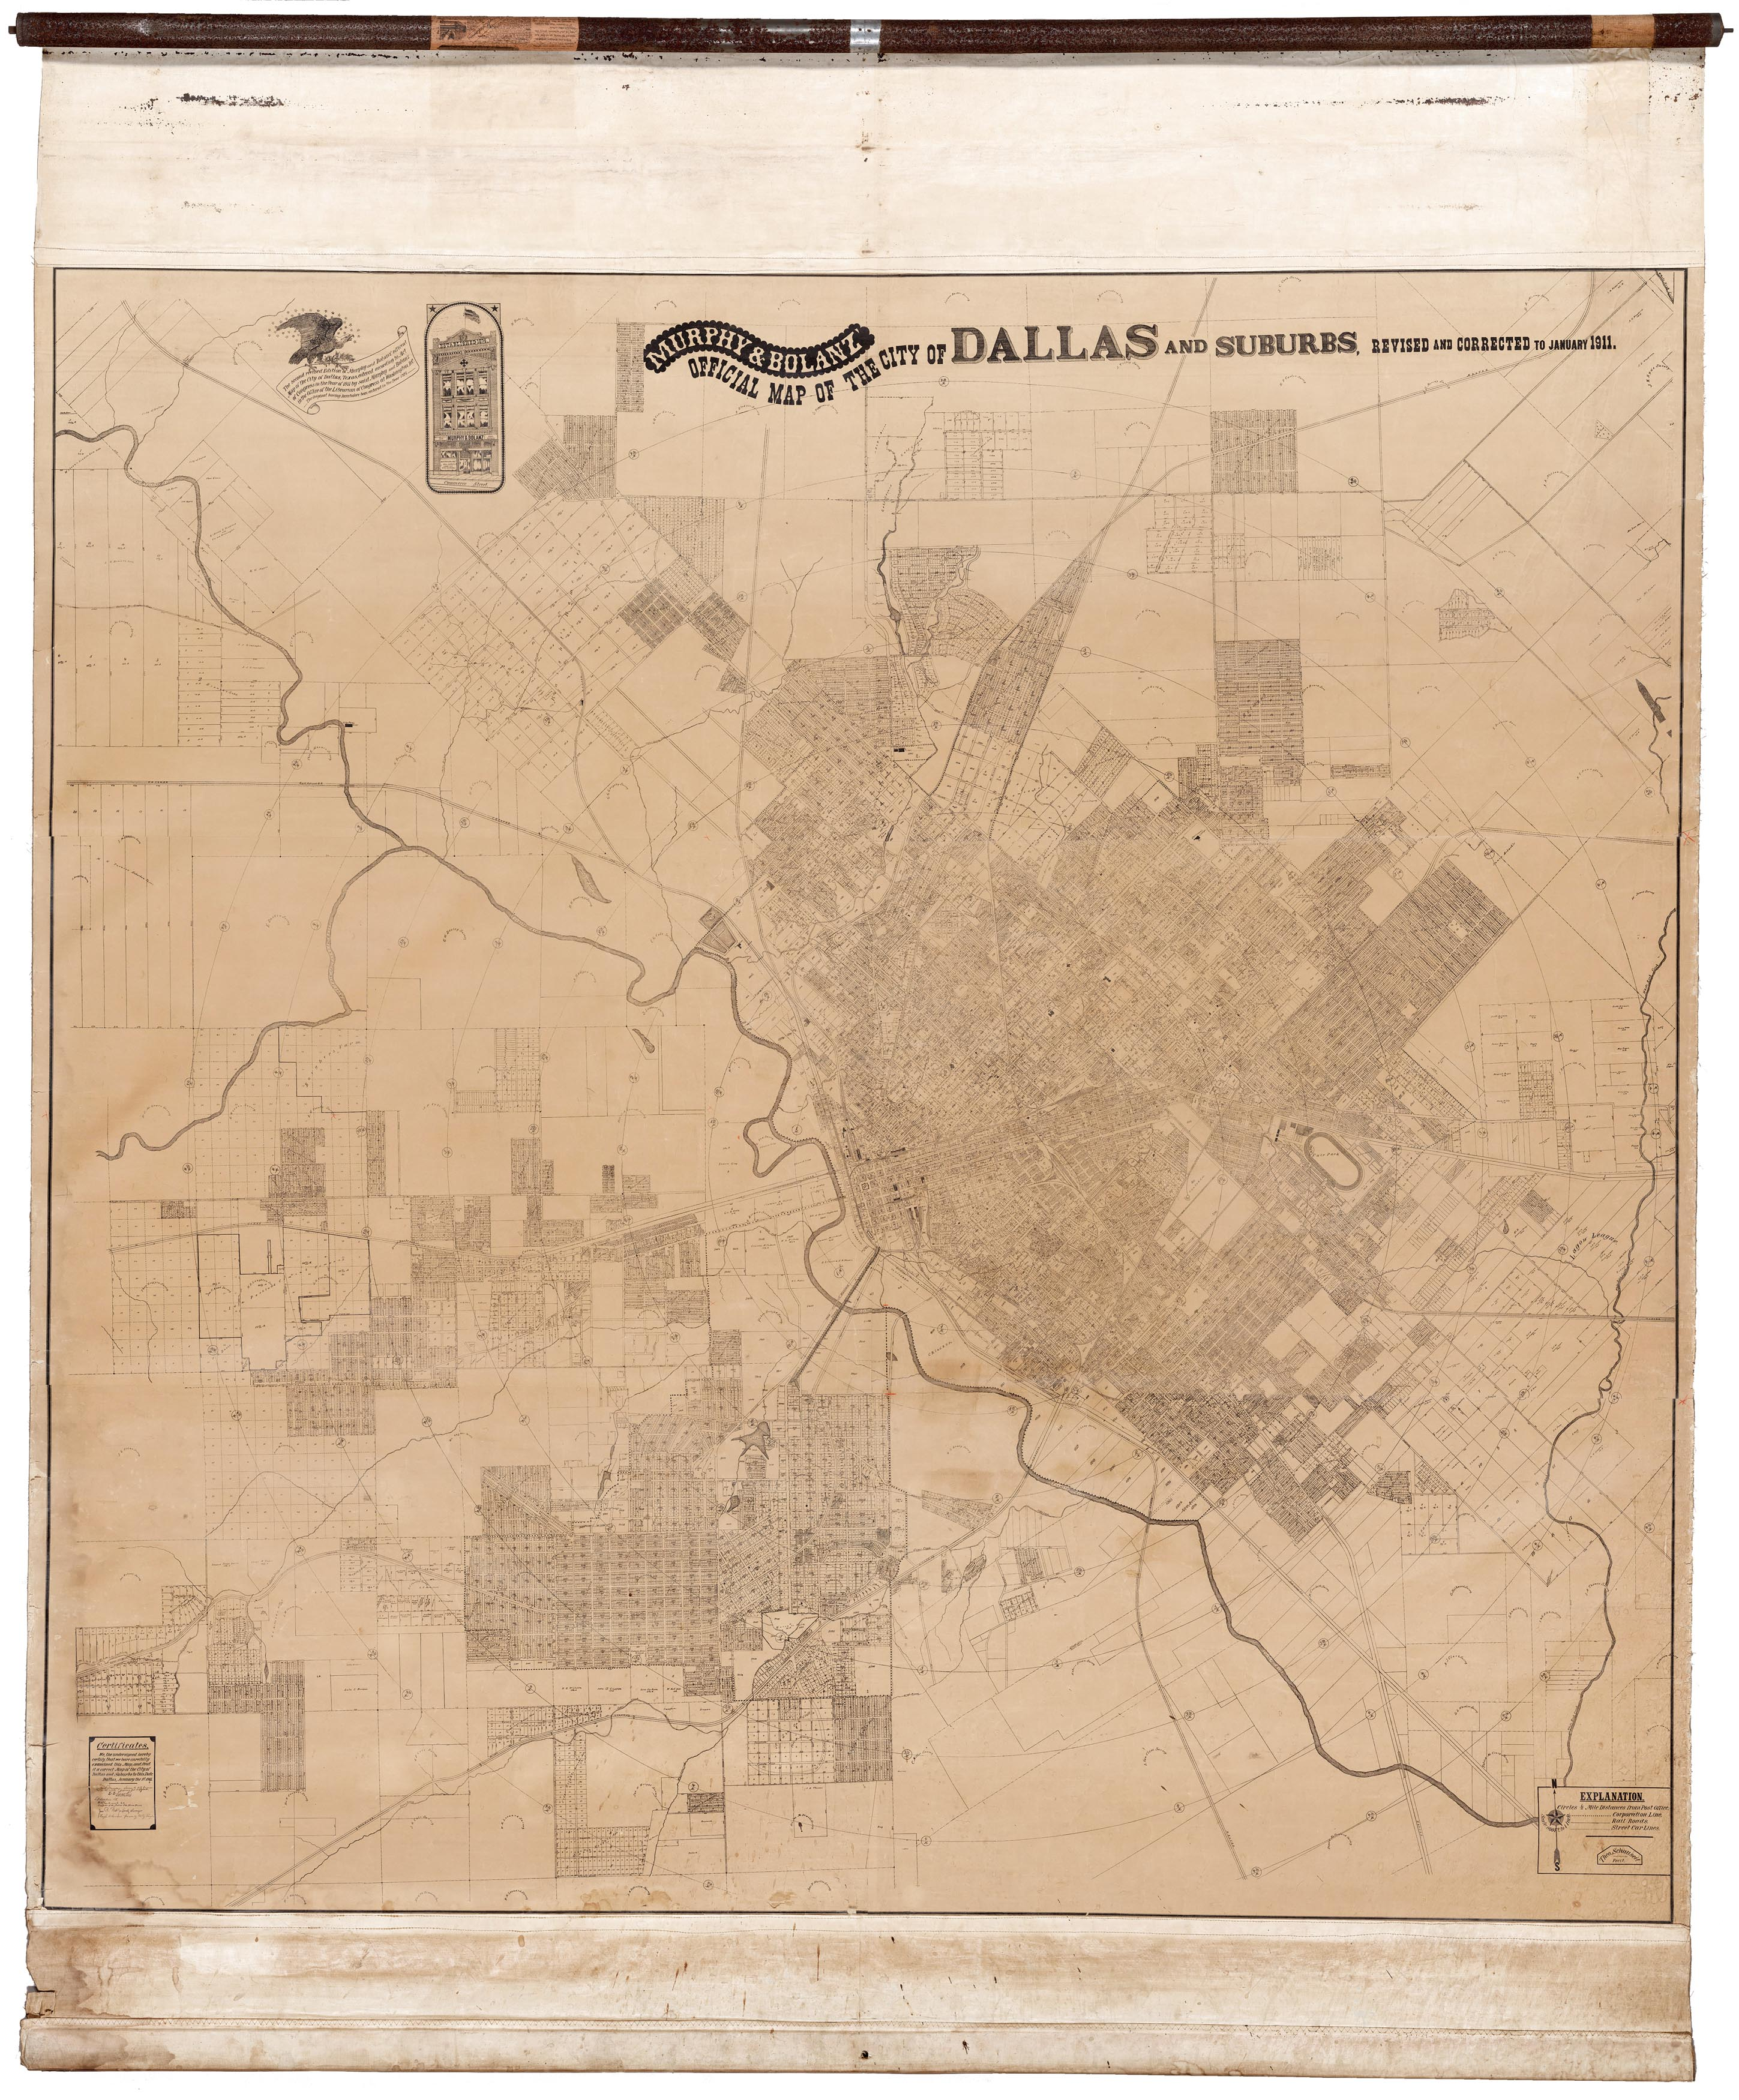 Colossal and unrecorded wall map of Dallas, Texas